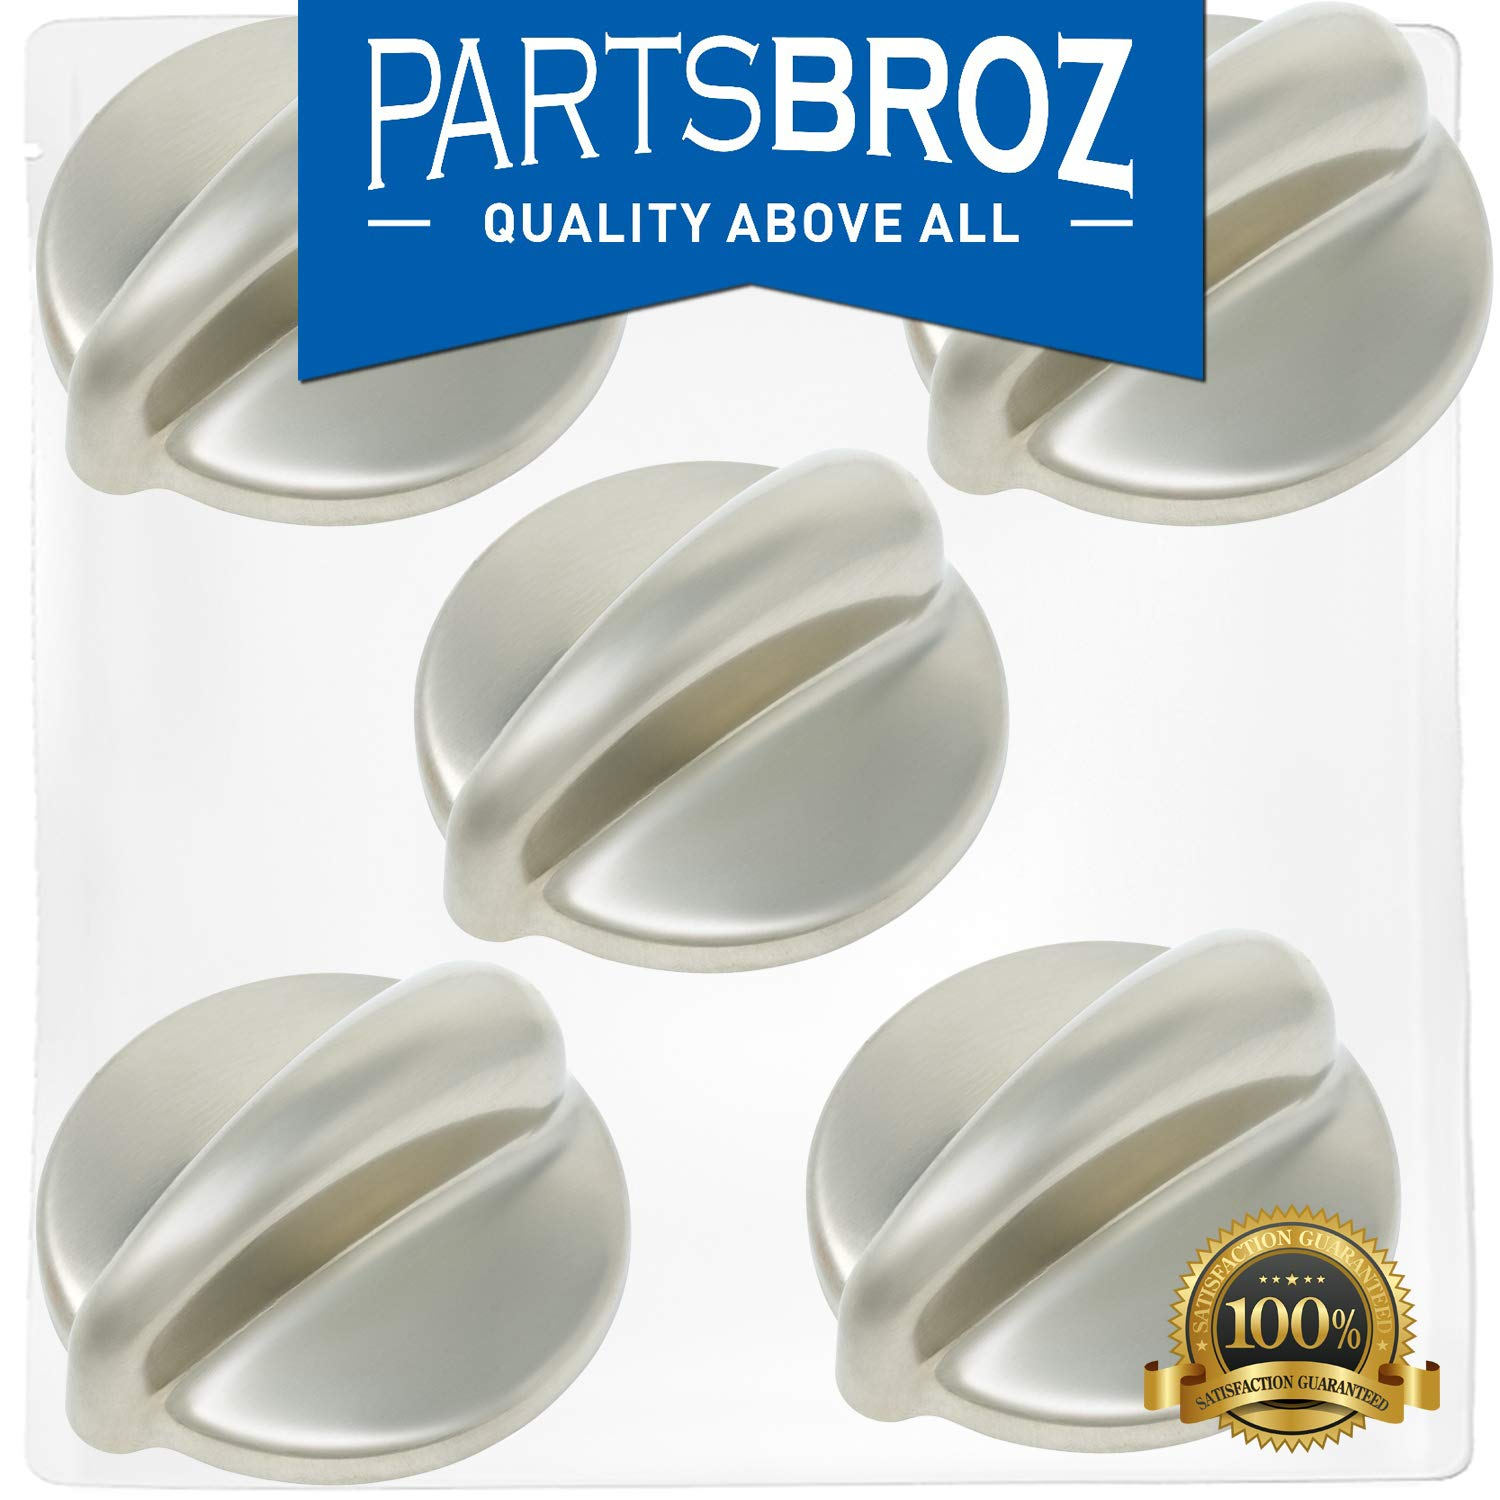 WB03K10303 Surface Burner Control Knob for GE Stoves, Chrome Finish by PartsBroz - Replaces Part Numbers AP4980246, 1810427, AH3486484, EA3486484, PS3486484, WB03K10208 (Pack of 5)